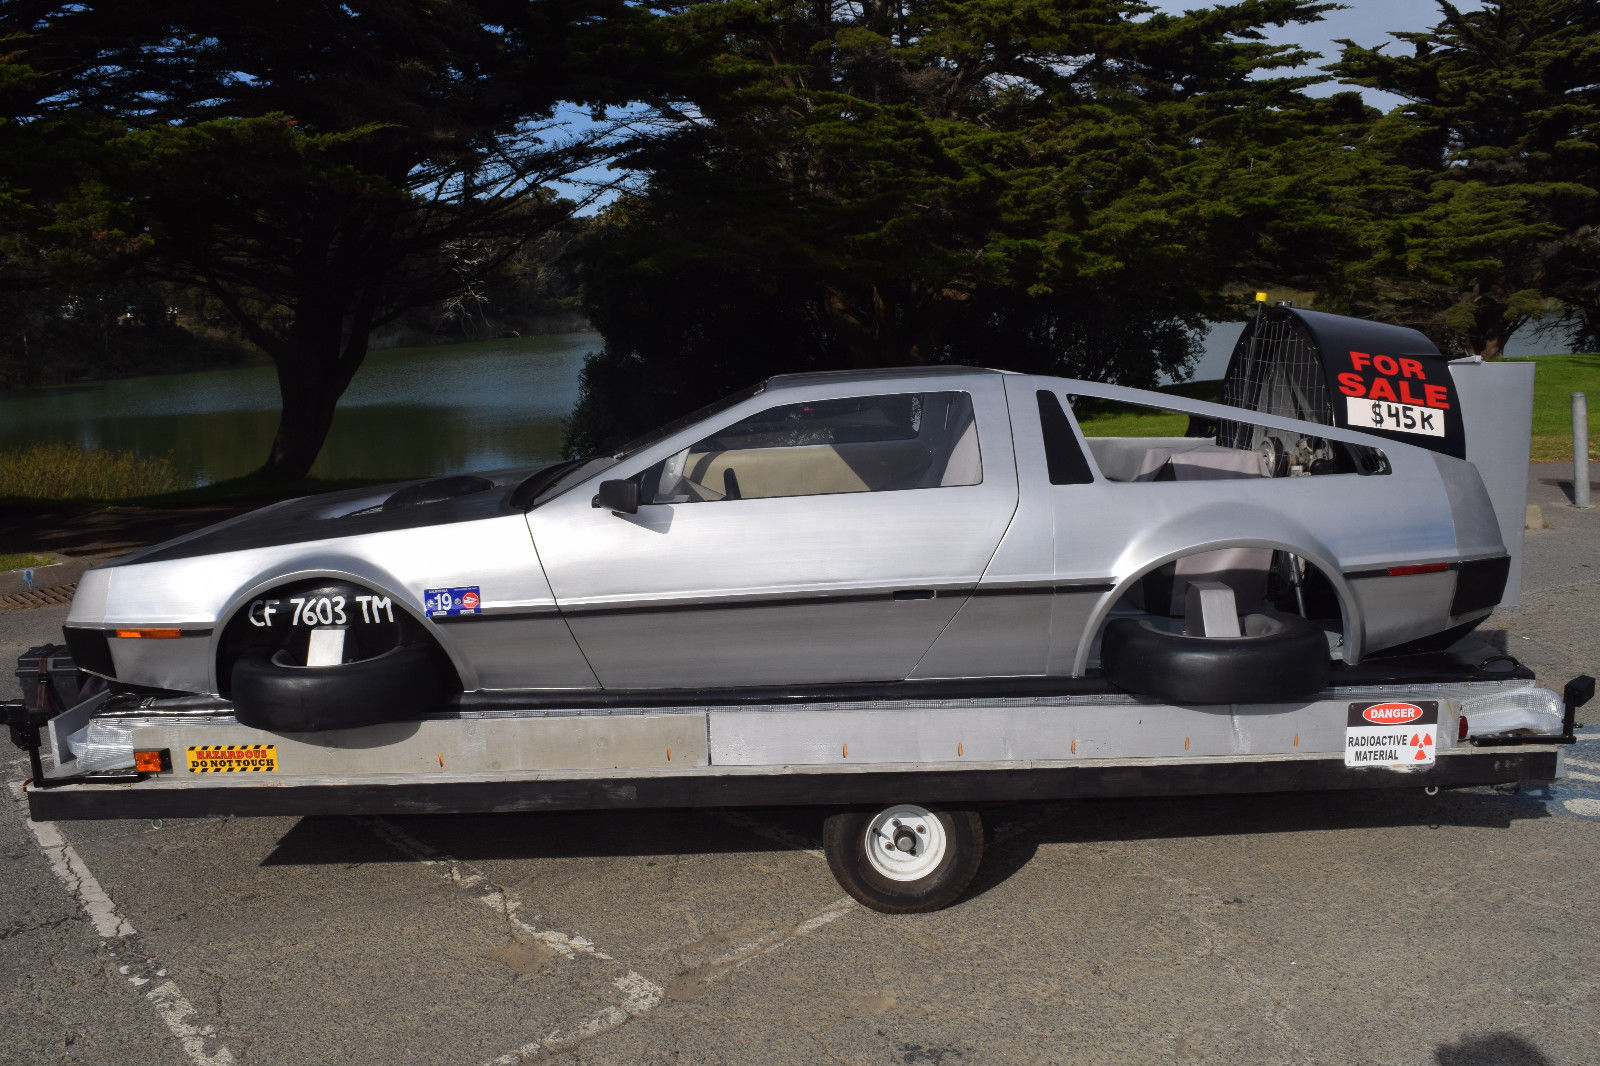 delorean hovercraft side profile